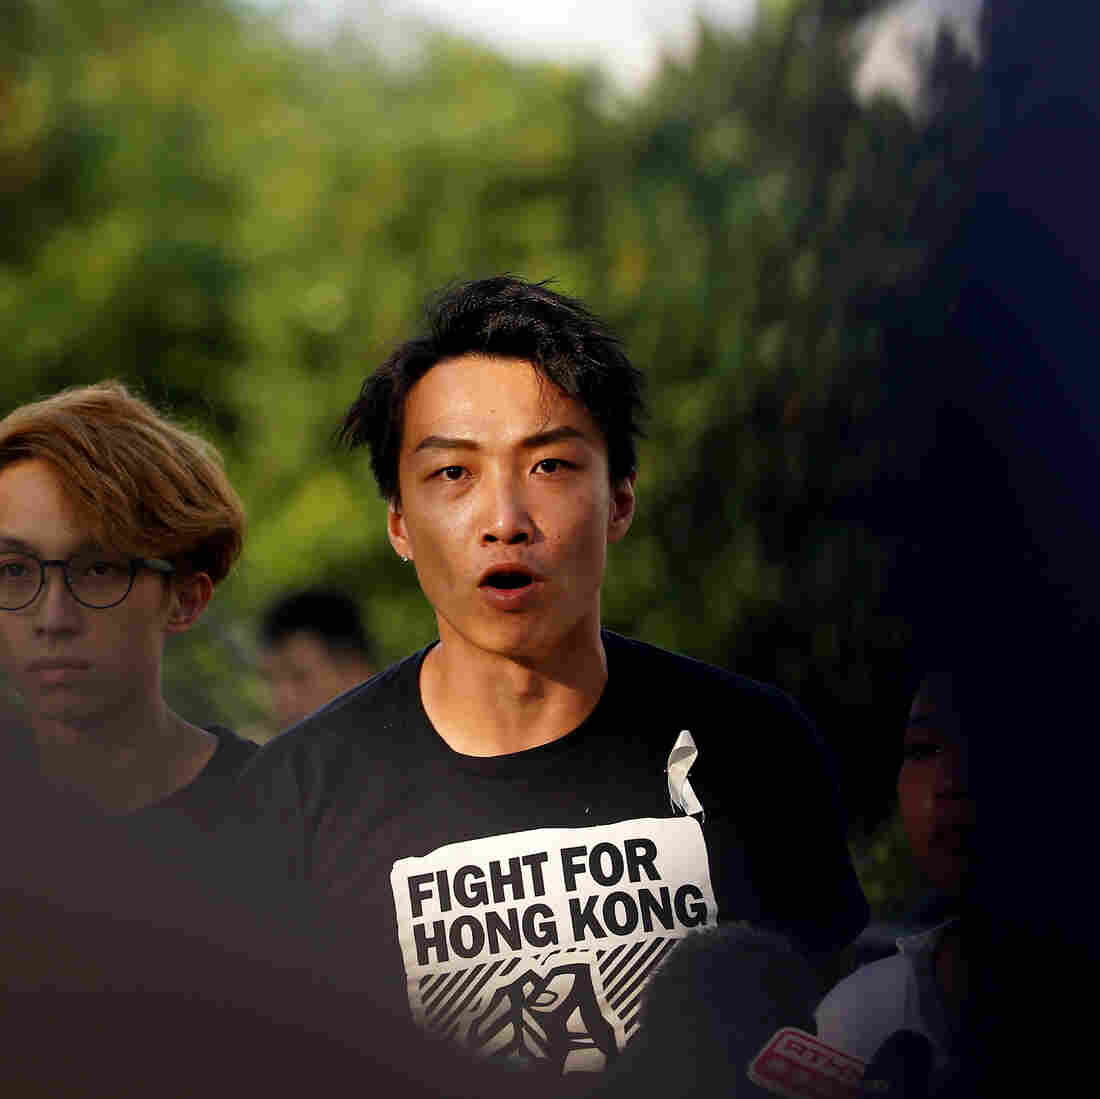 Westlake Legal Group rts2i8br-1-_sq-316edf50d809b9a6c3993e5b3942984a7bd4b065-s1100-c15 Prominent Hong Kong Protest Leader Beaten By Unknown Assailants